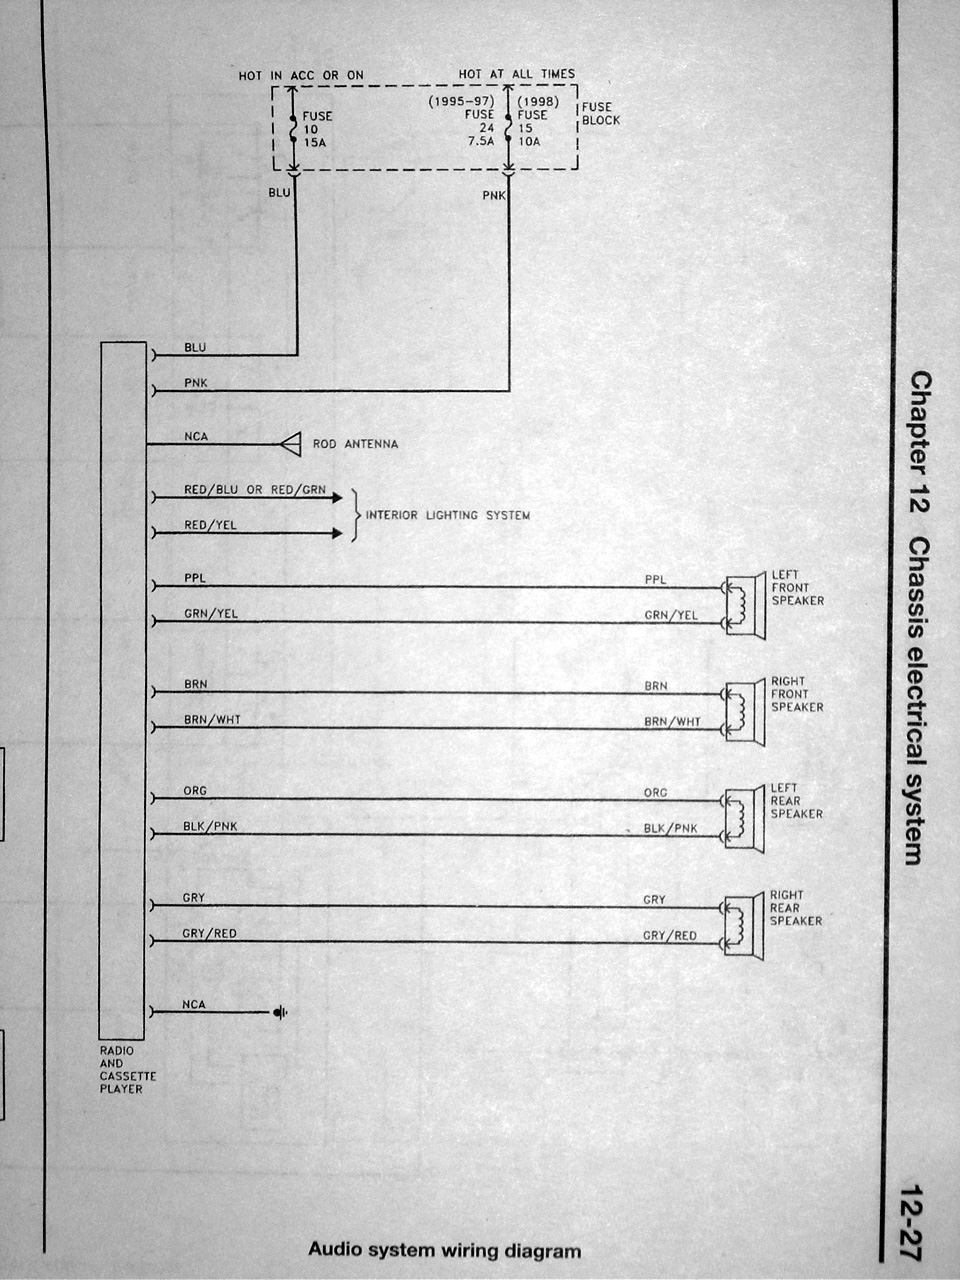 DSC01849?resize=665%2C887 2005 altima 2 5 s radio wiring illumination interior lighting 1998 nissan altima radio wiring diagram at soozxer.org